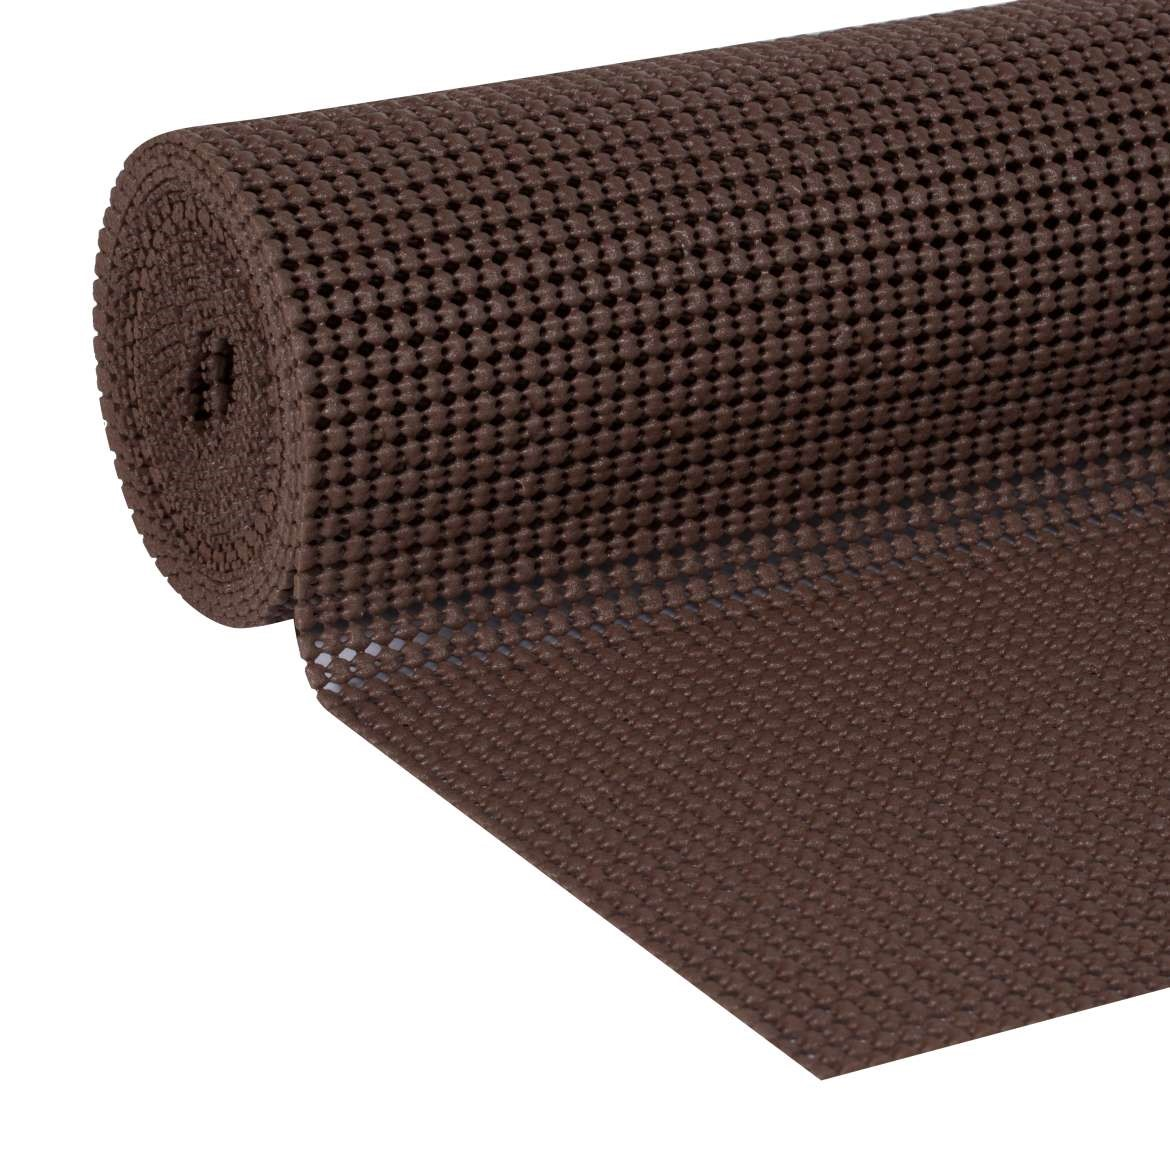 Kitchen Drawer Liners Walmart: Duck Select Grip 12 In. X 10 Ft. Shelf Liner, Chocolate